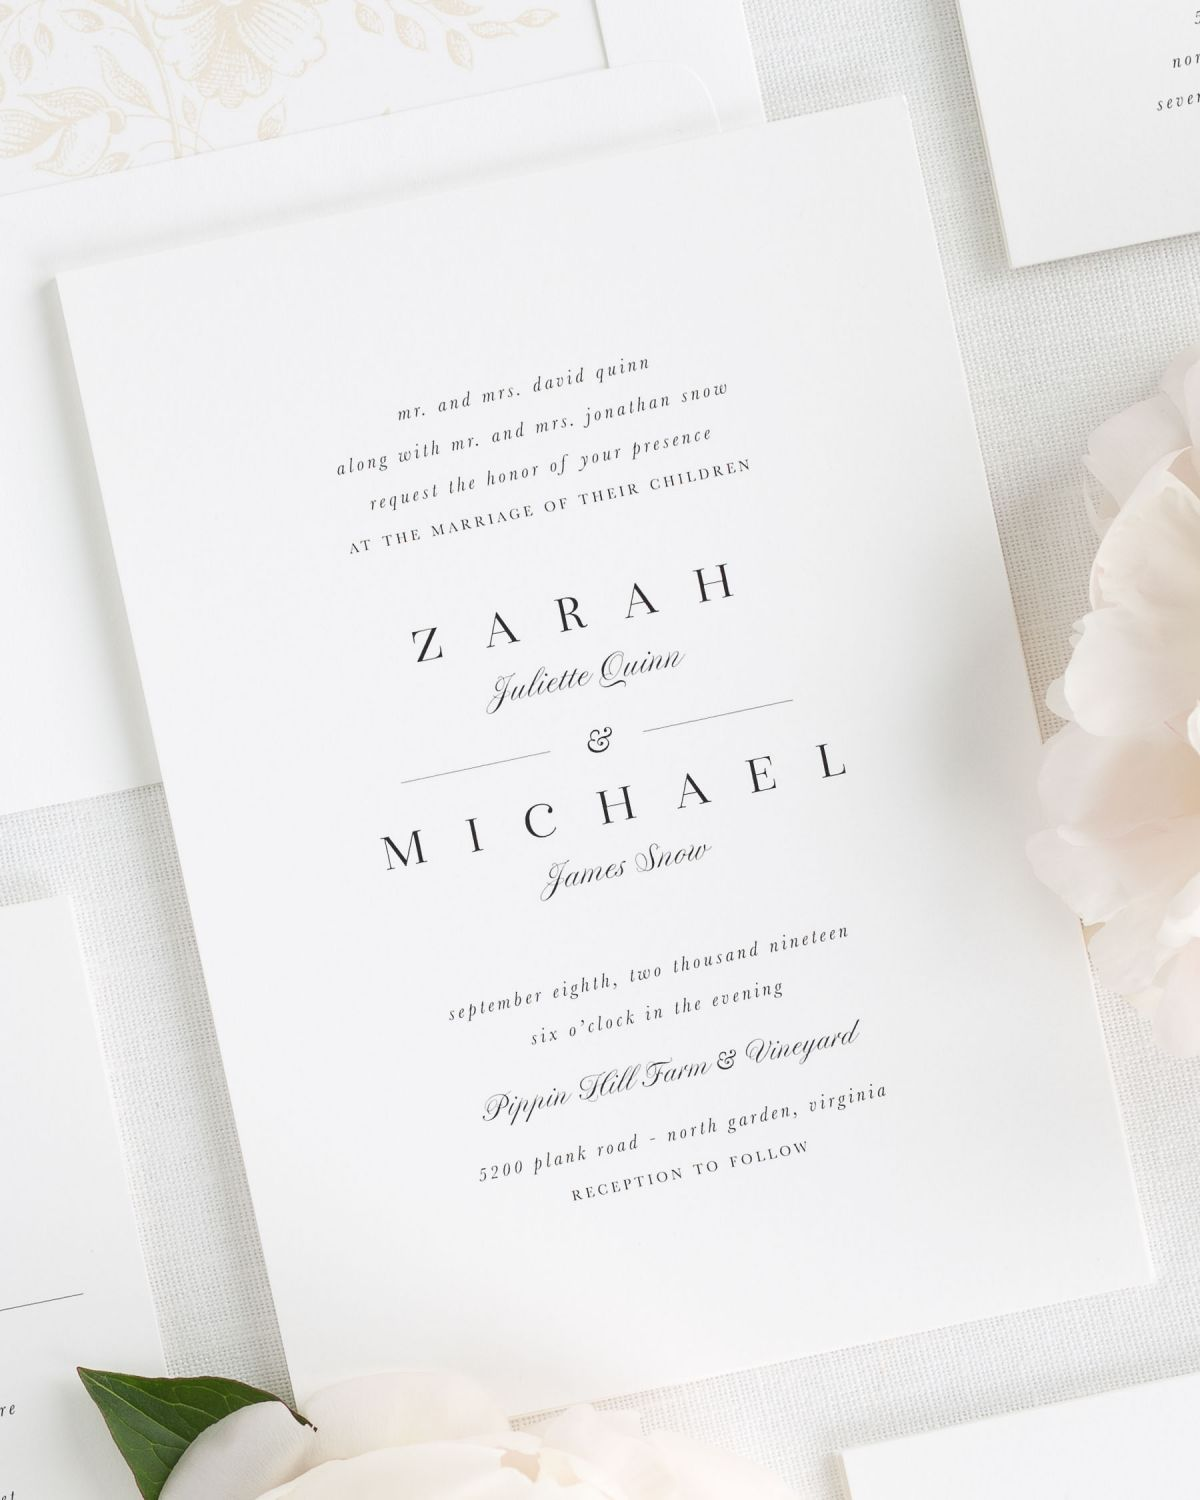 Reception Following Ceremony Wording: Zarah Wedding Invitations In 2019